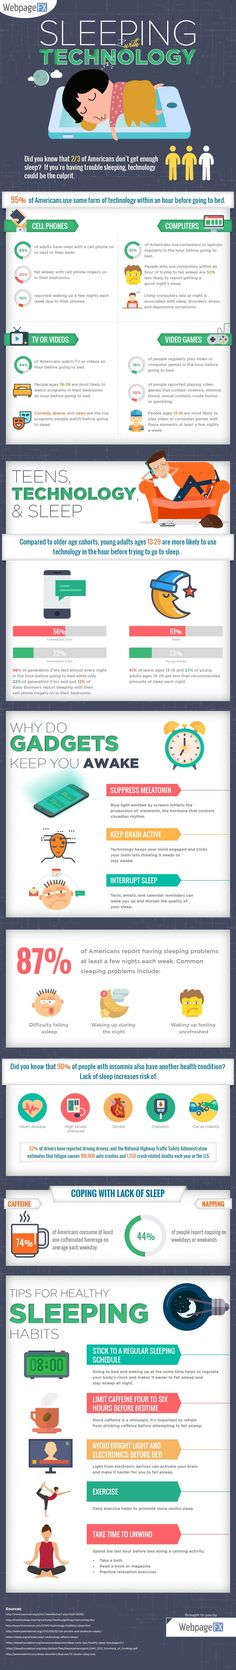 Sleeping with Technology [Infographic] / Digital Information World